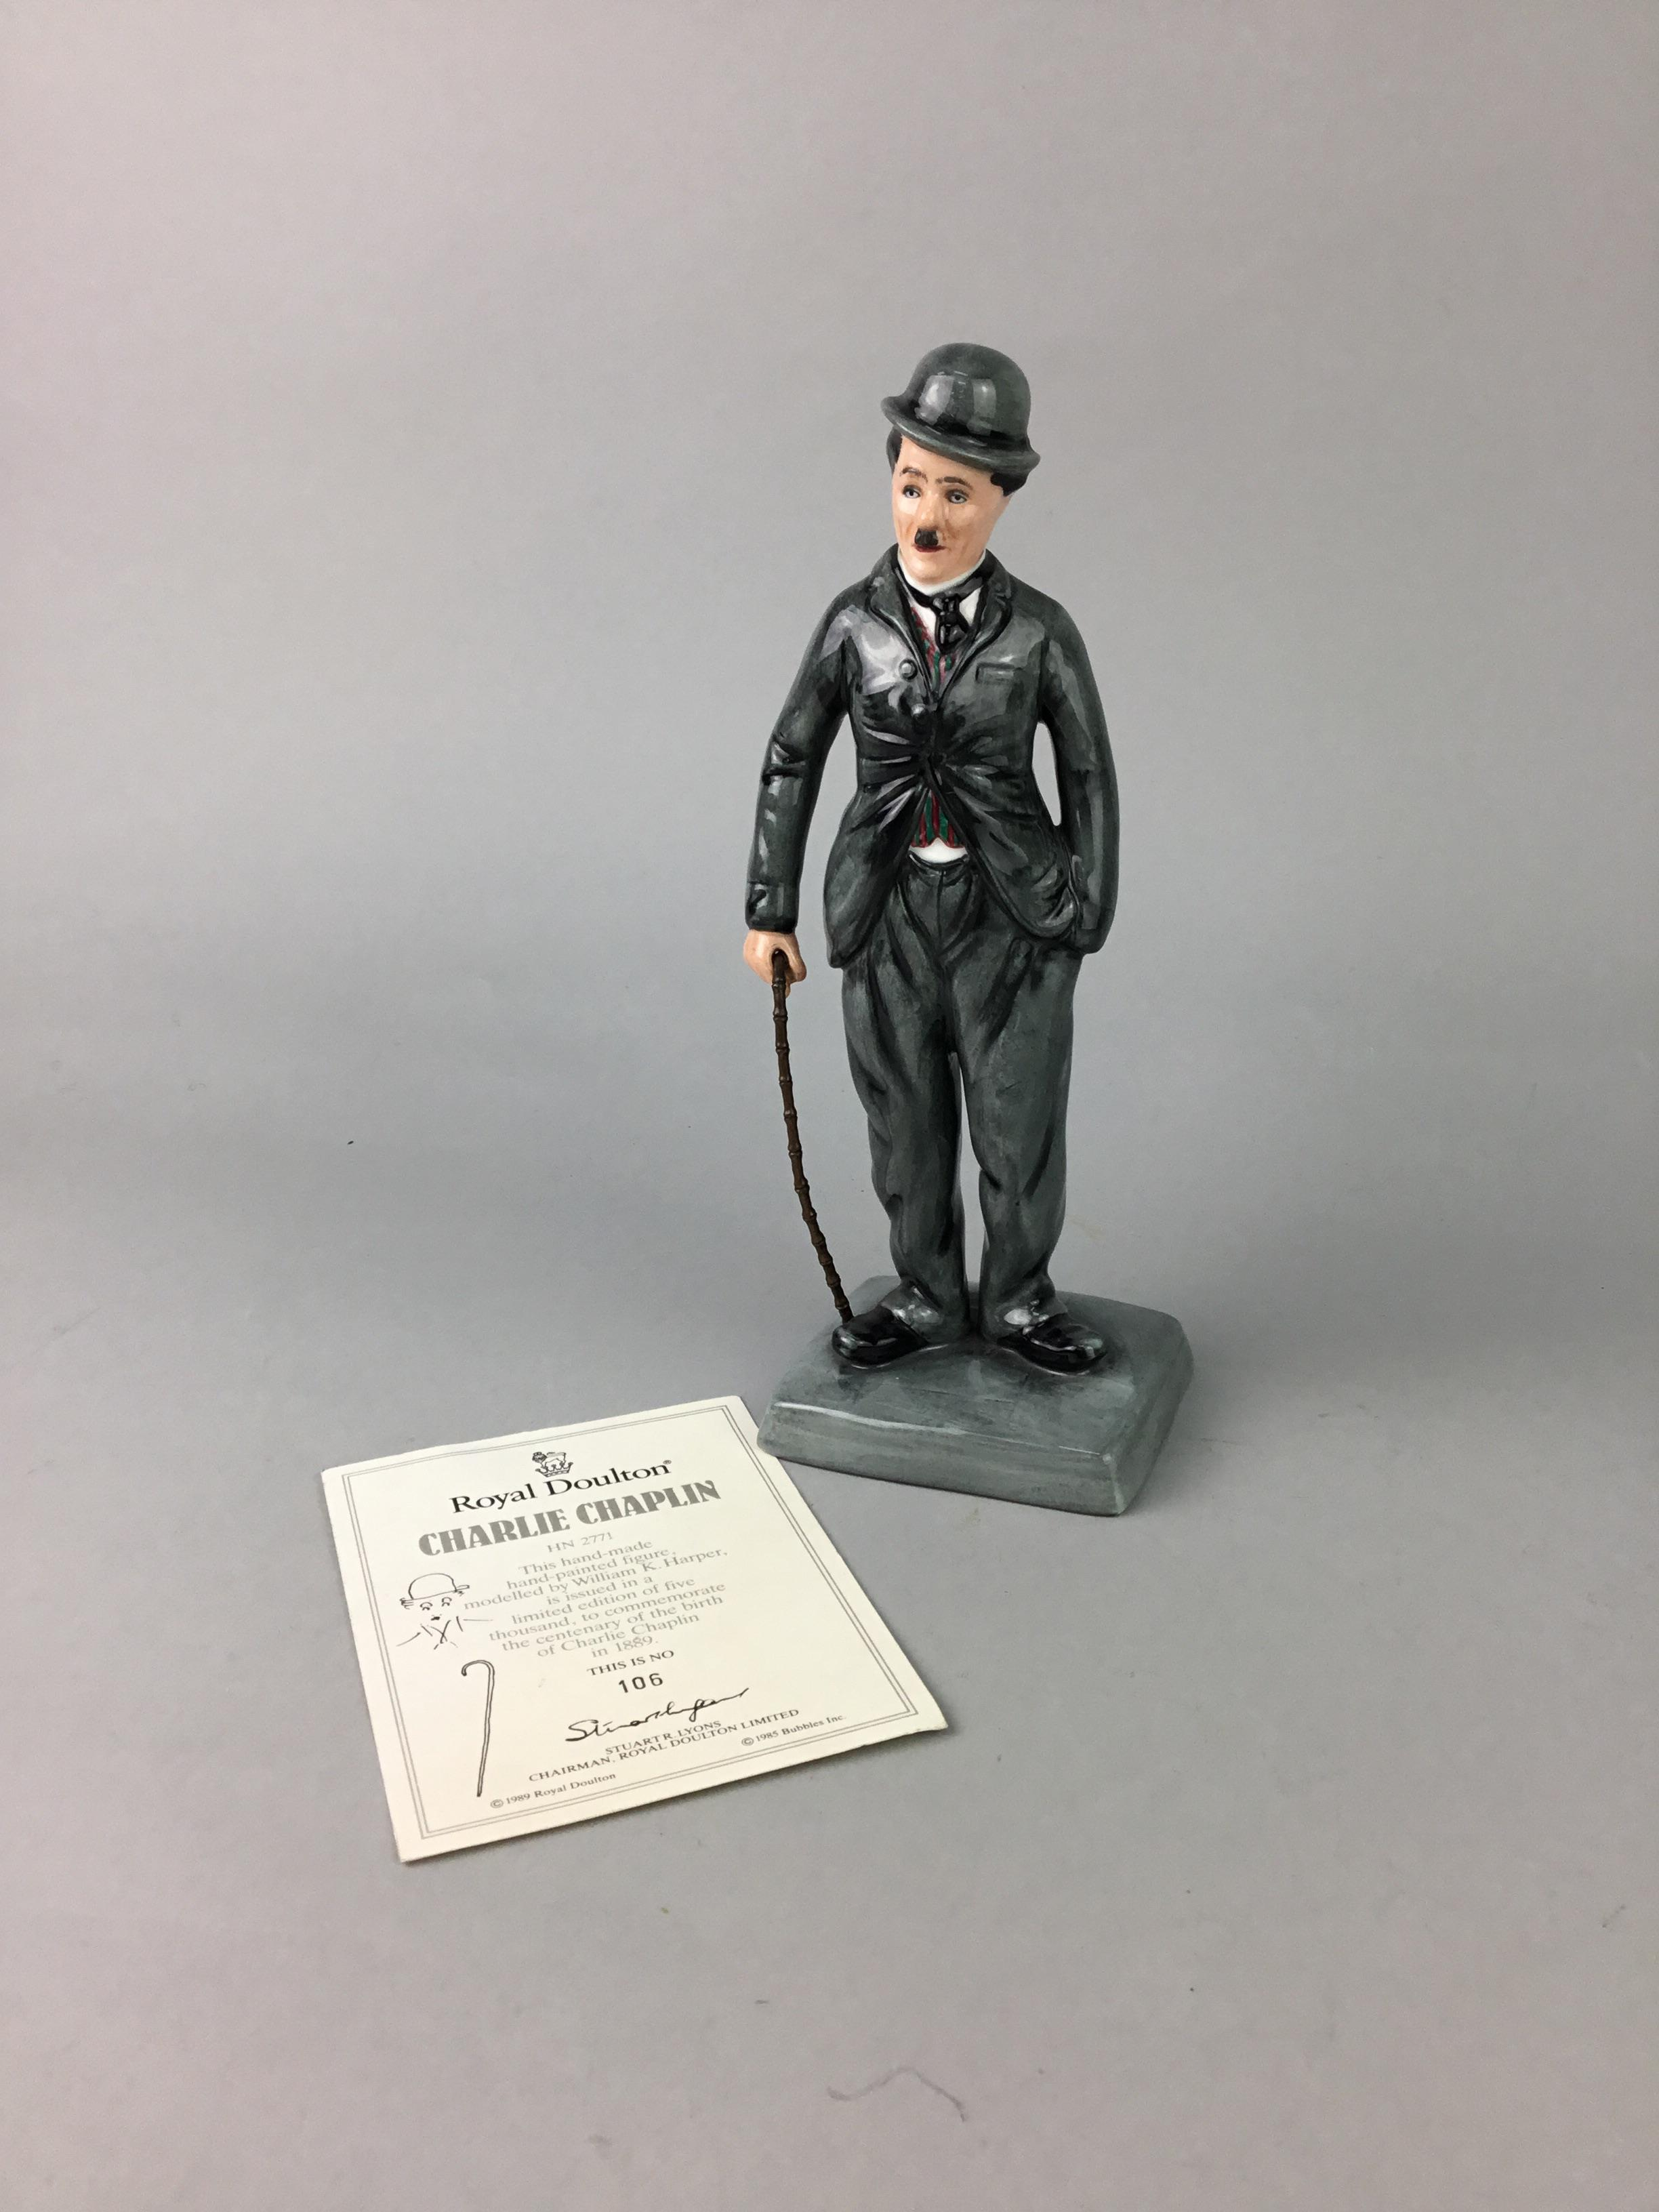 Lot 128 - A ROYAL DOULTON FIGURE OF CHARLIE CHAPLIN